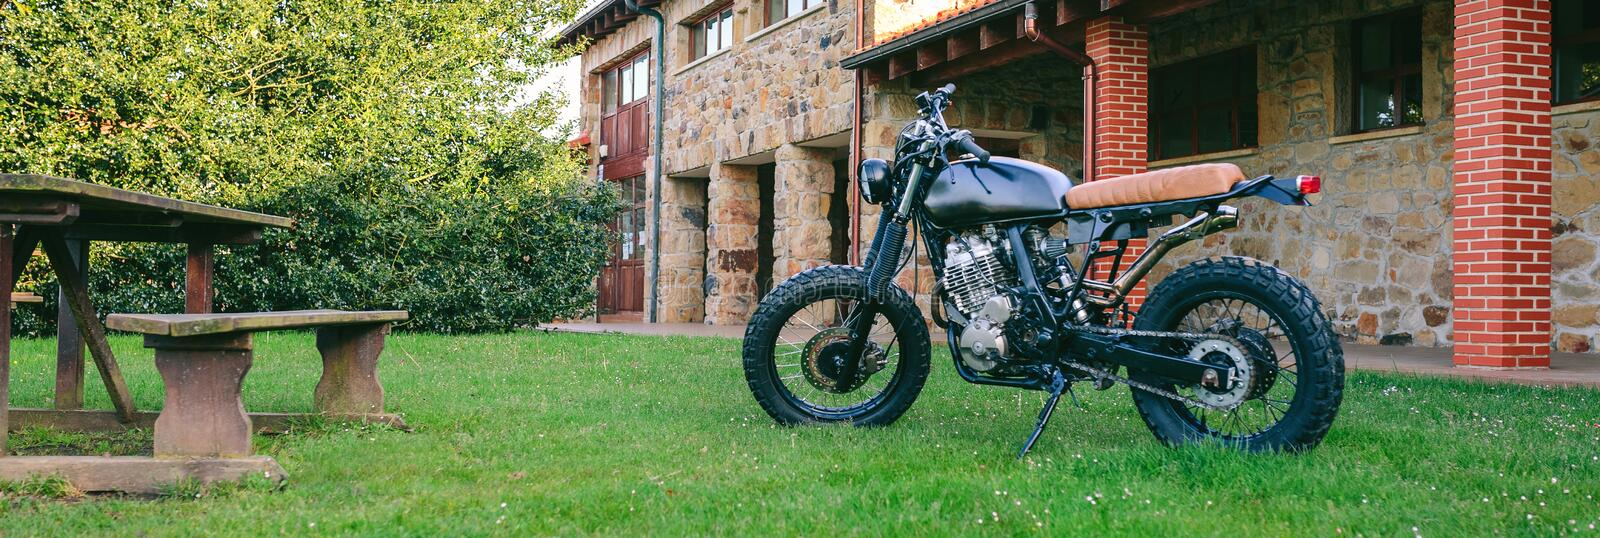 Custom motorcycle parked on the grass. Beautiful vintage custom motorcycle parked on the grass royalty free stock photo